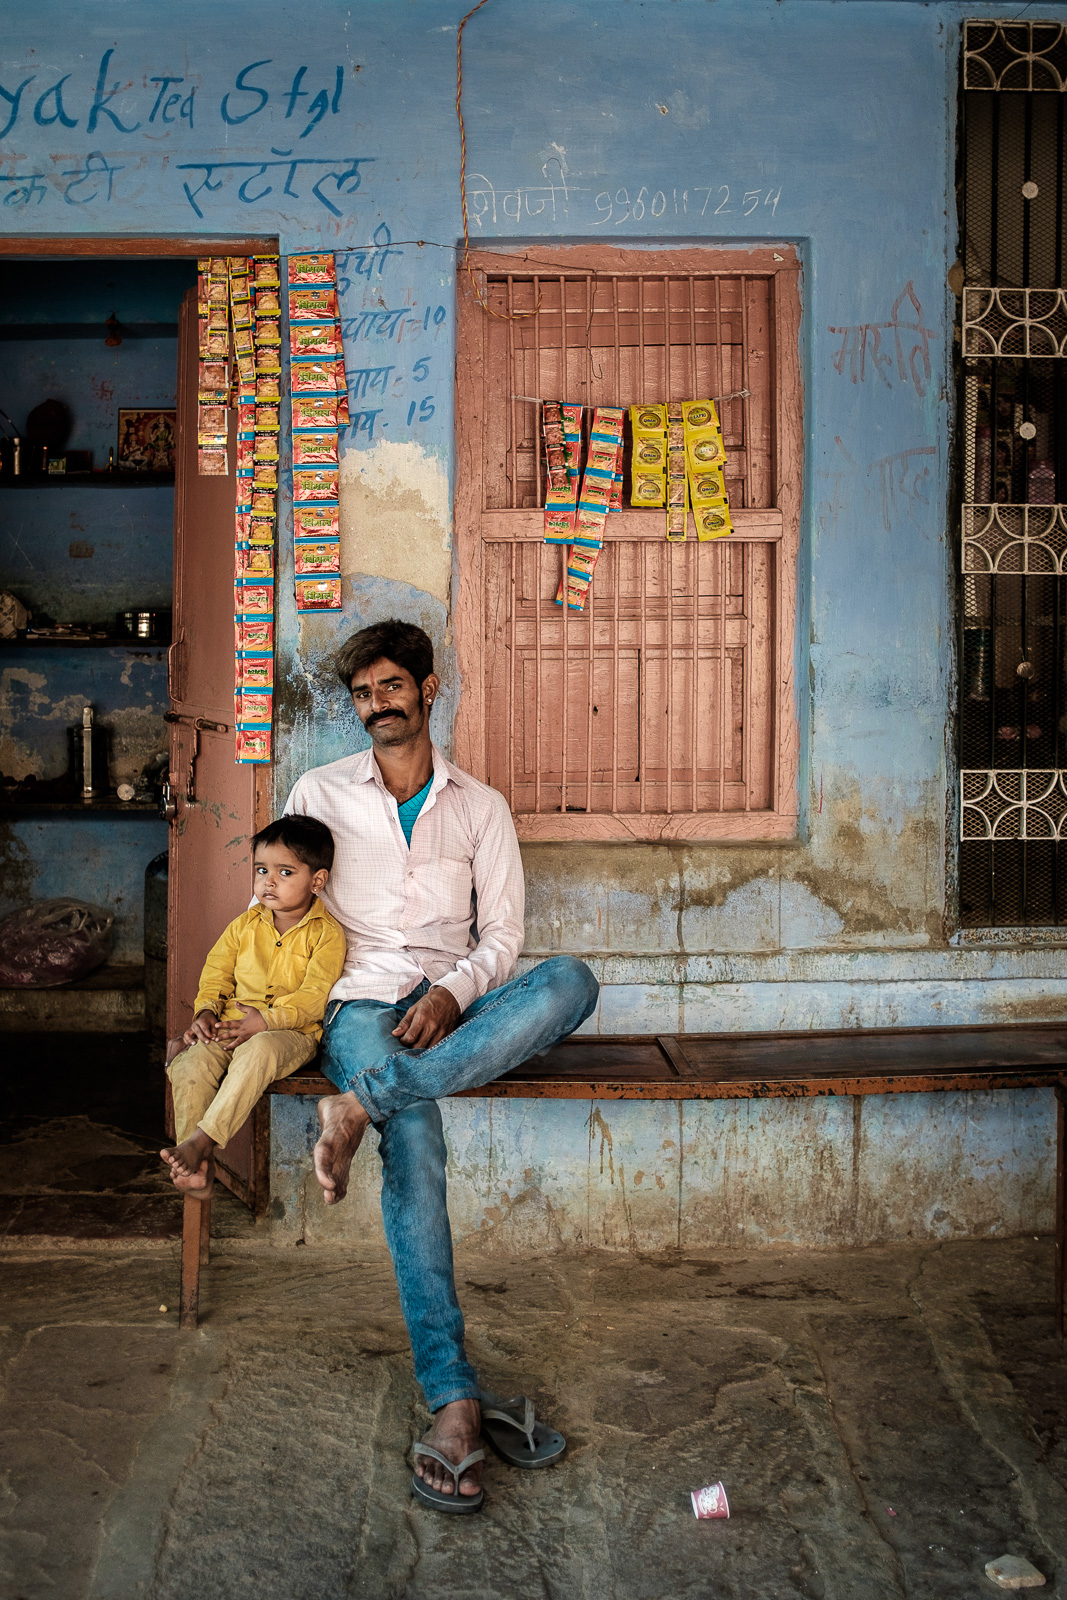 Jojawar, Rajasthan. A chai vendor and his son.